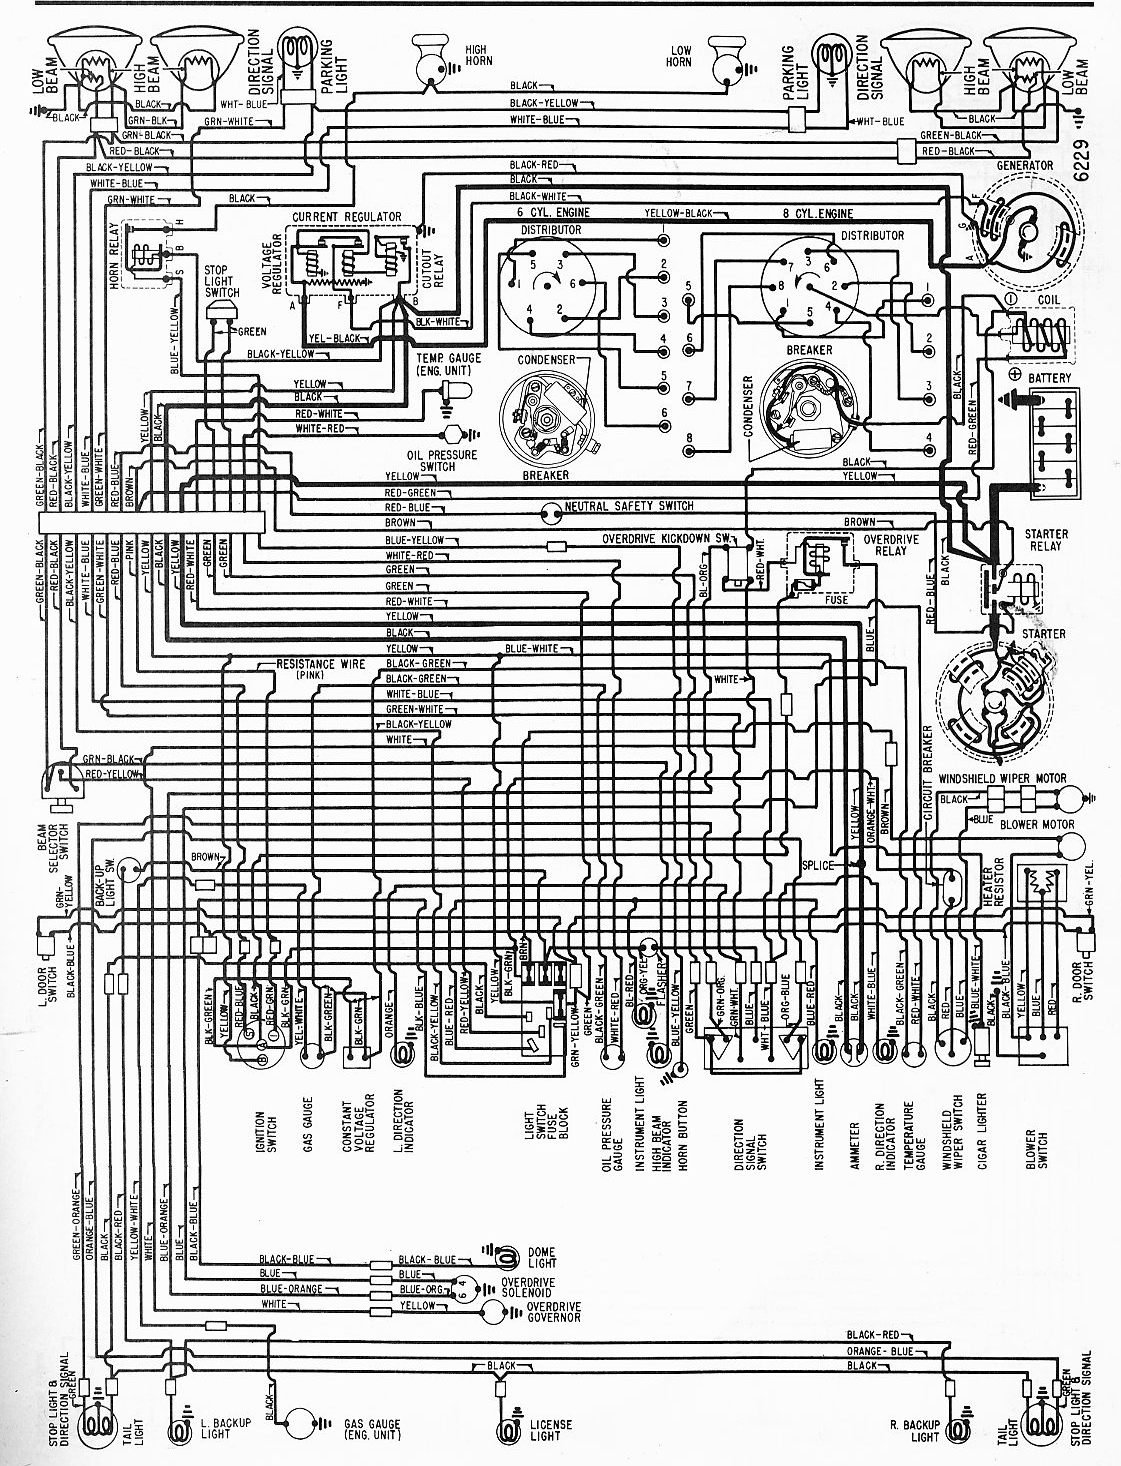 2012 11 08_045222_62_f100_wiring_diagram wiring diagram for 1972 ford f100 the wiring diagram 1971 ford f250 wiring diagram at mr168.co